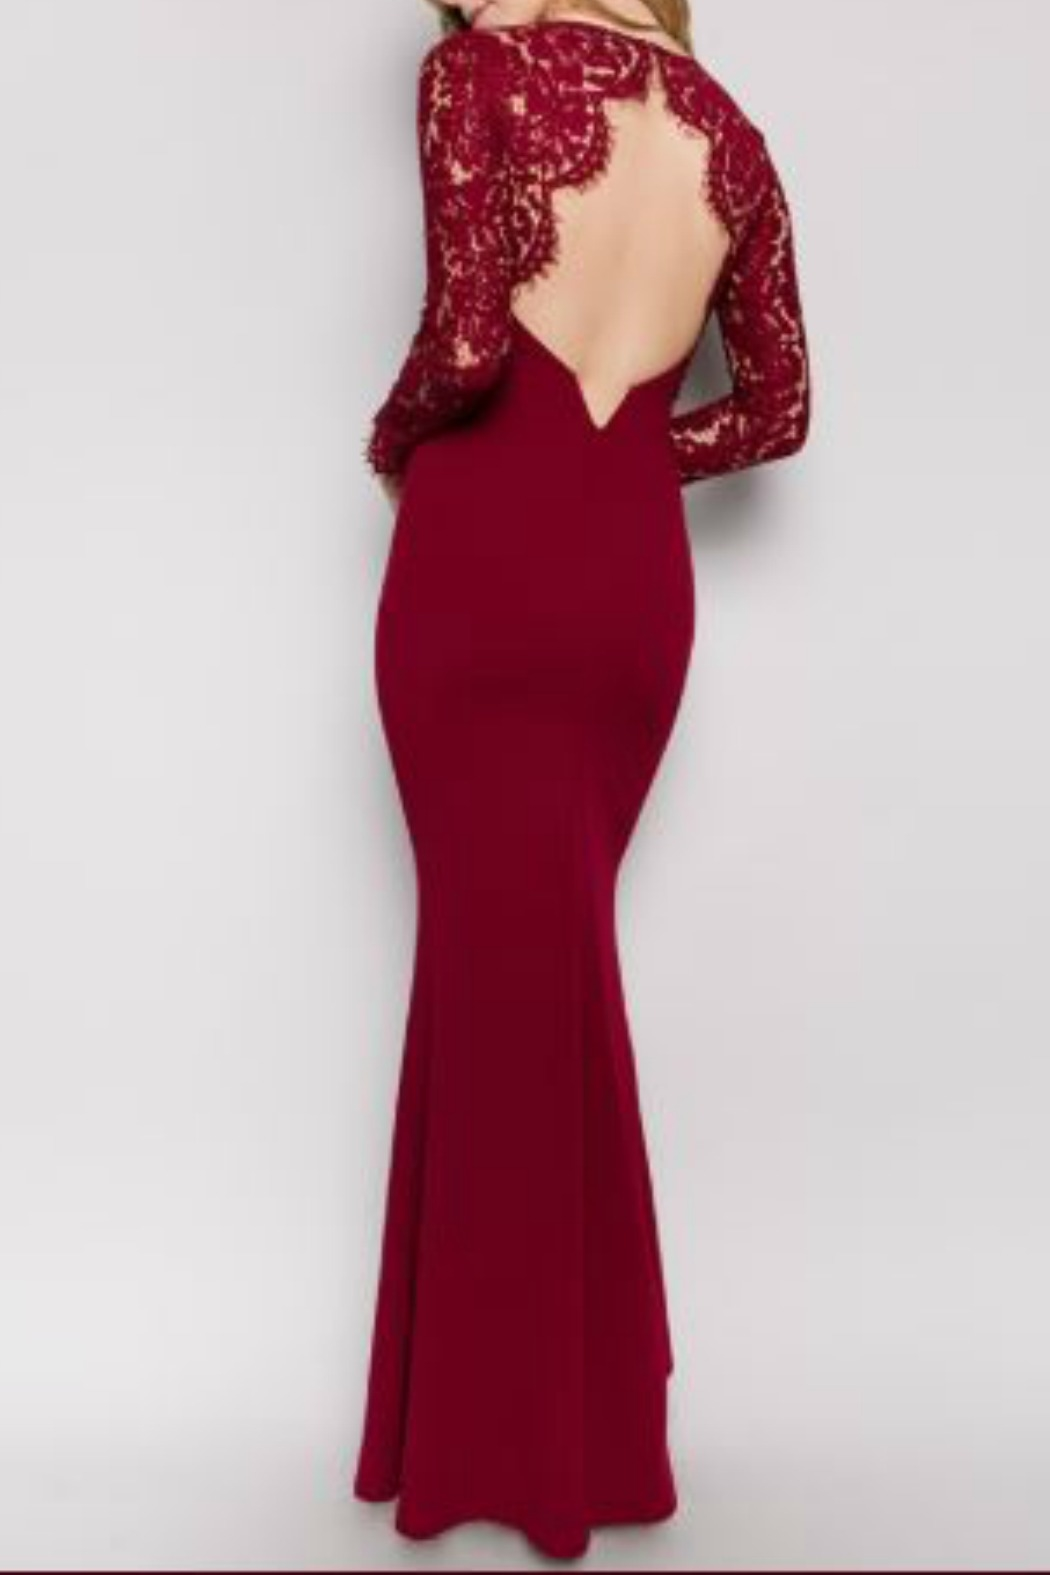 Minuet Burgundy Long Formal Dress with Lace Sleeve - Side Cropped Image